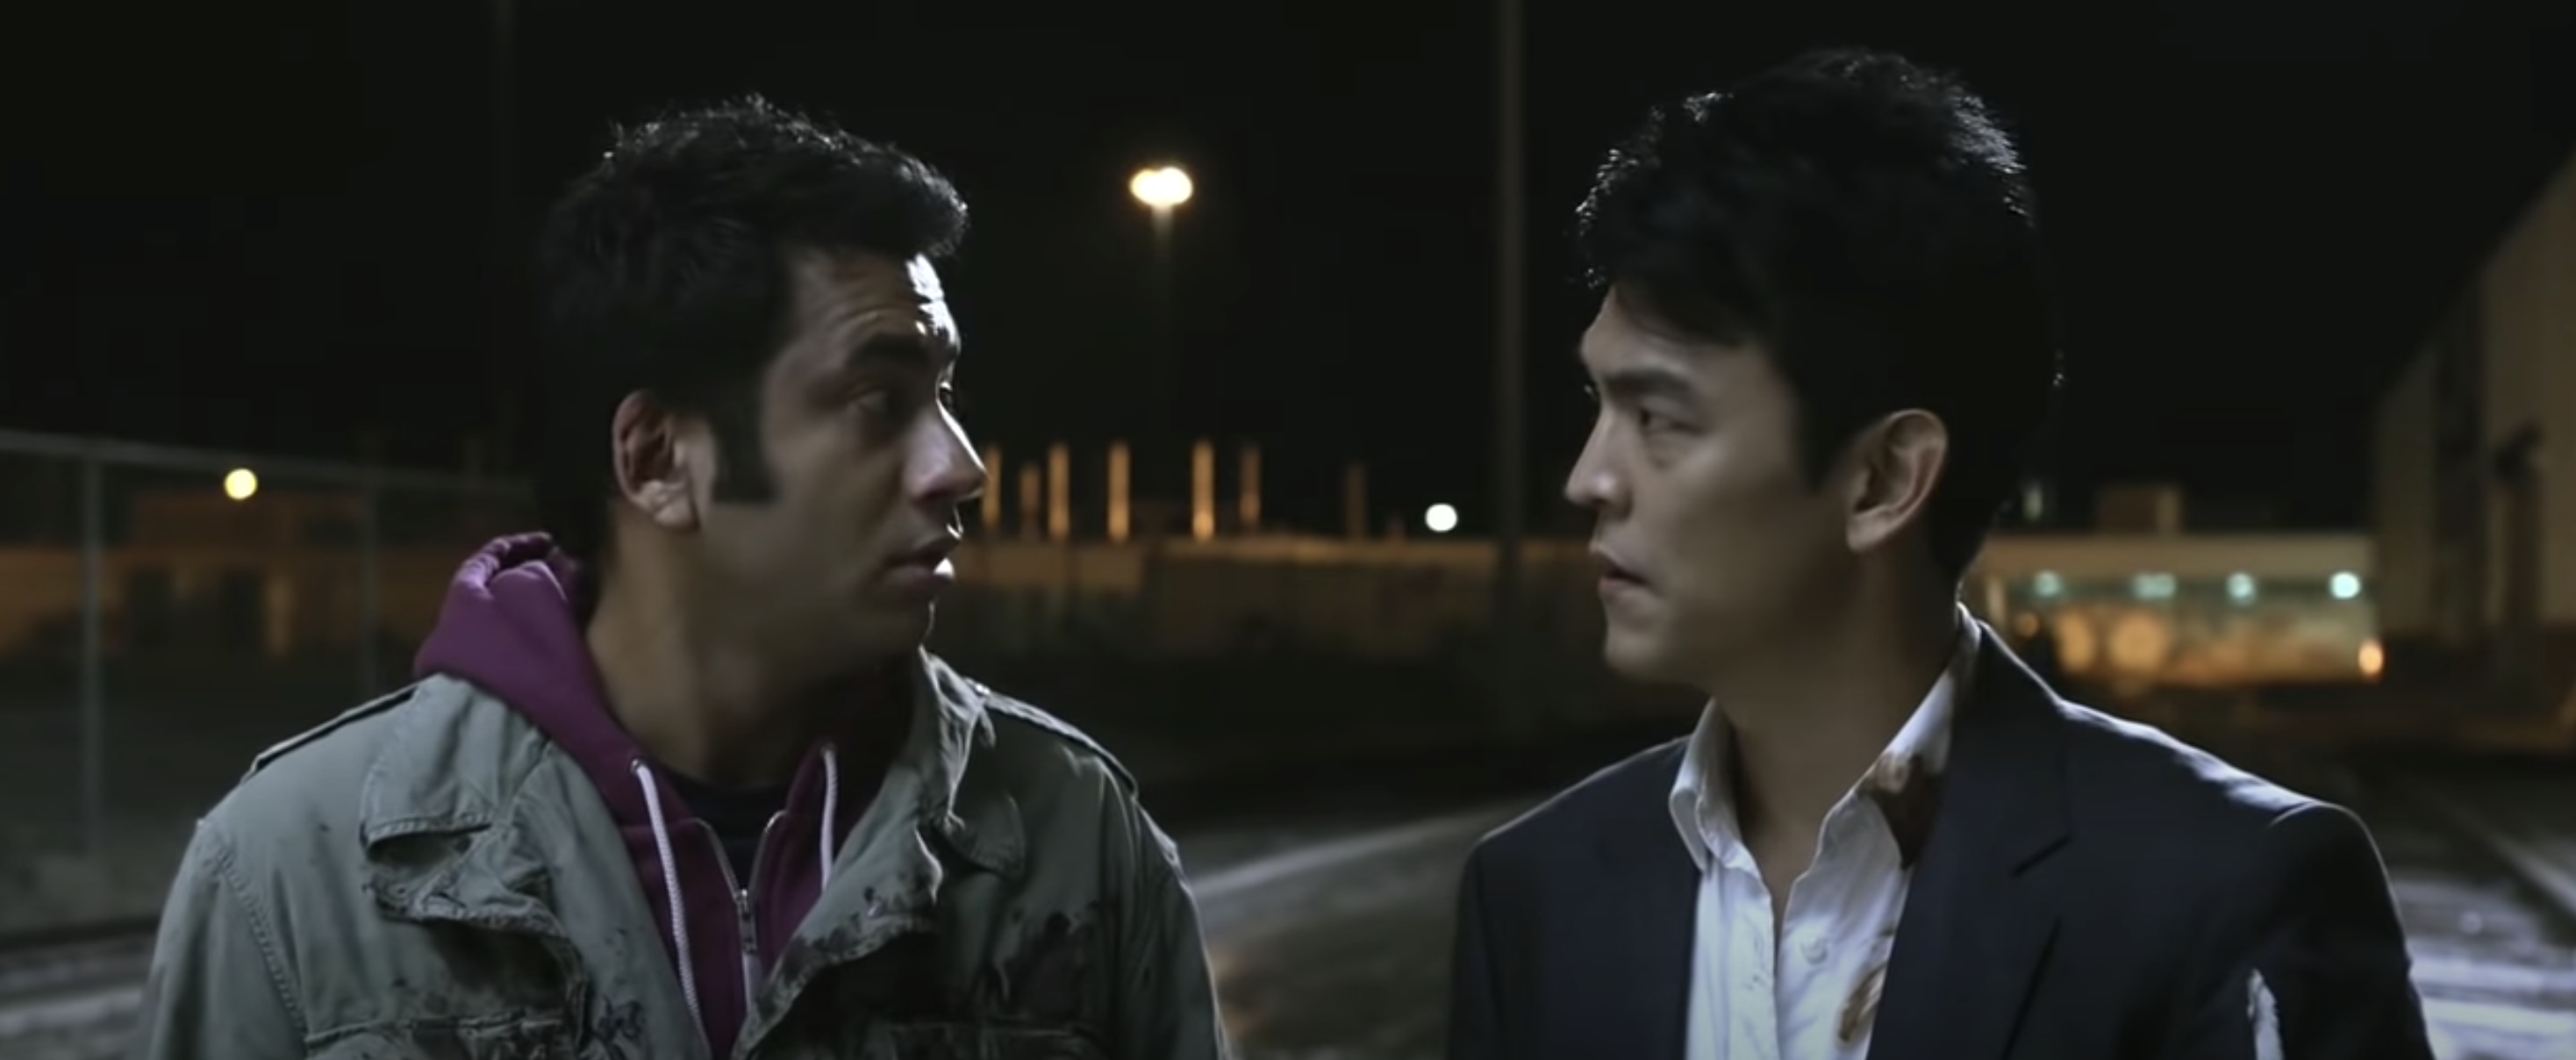 Harold and Kumar, Harold in a suit and Kumar in a hoodie